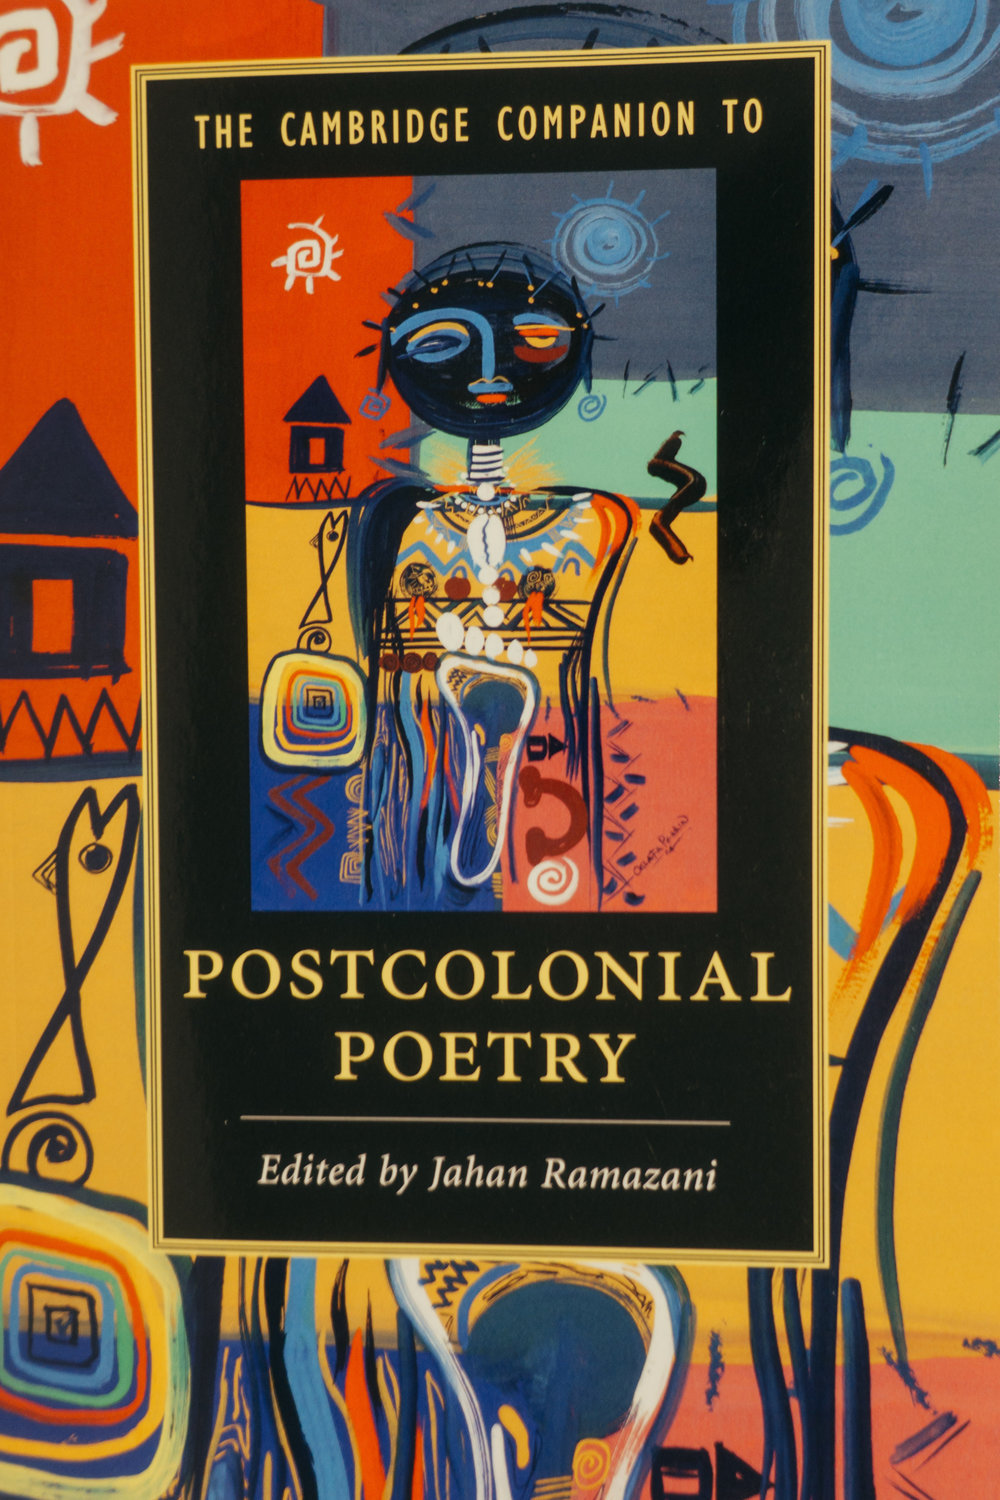 'Australia and New Zealand/Aotearoa',  The Cambridge Companion to Postcolonial Poetry ,ed Jahan Ramazani, Cambridge University Press, Cambridge, 2017.